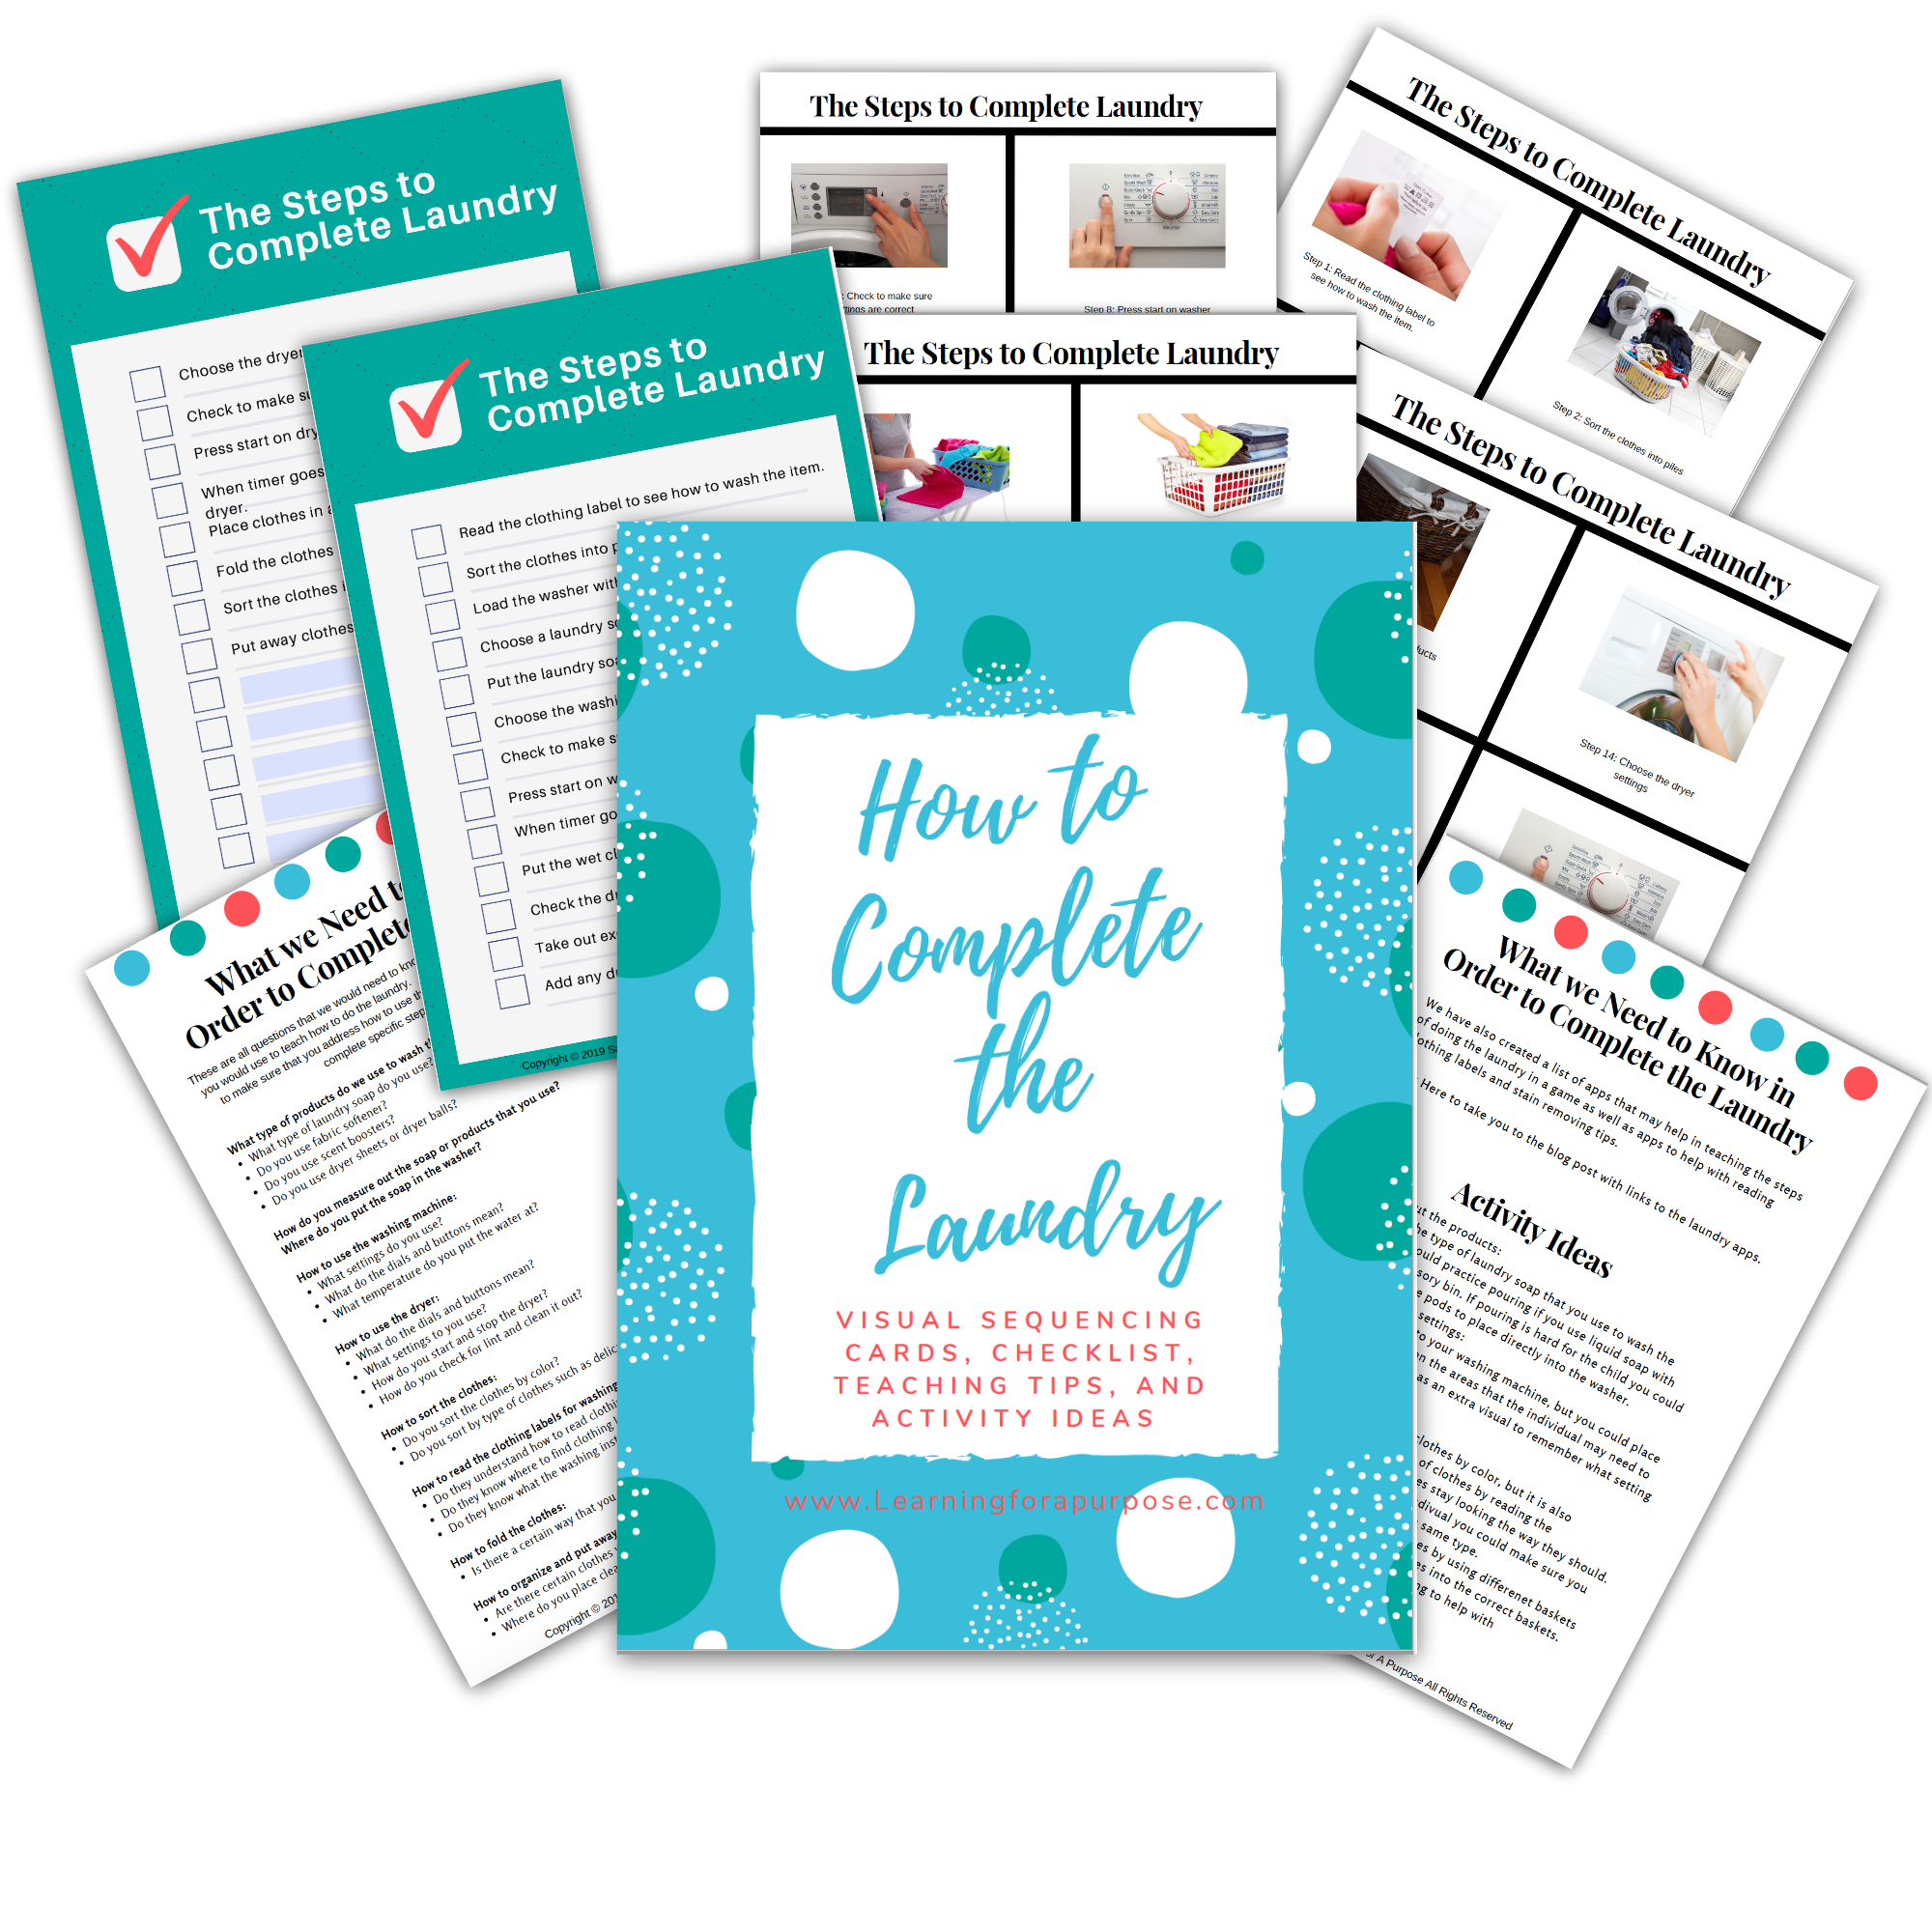 How to Complete the Laundry Printable Display Image